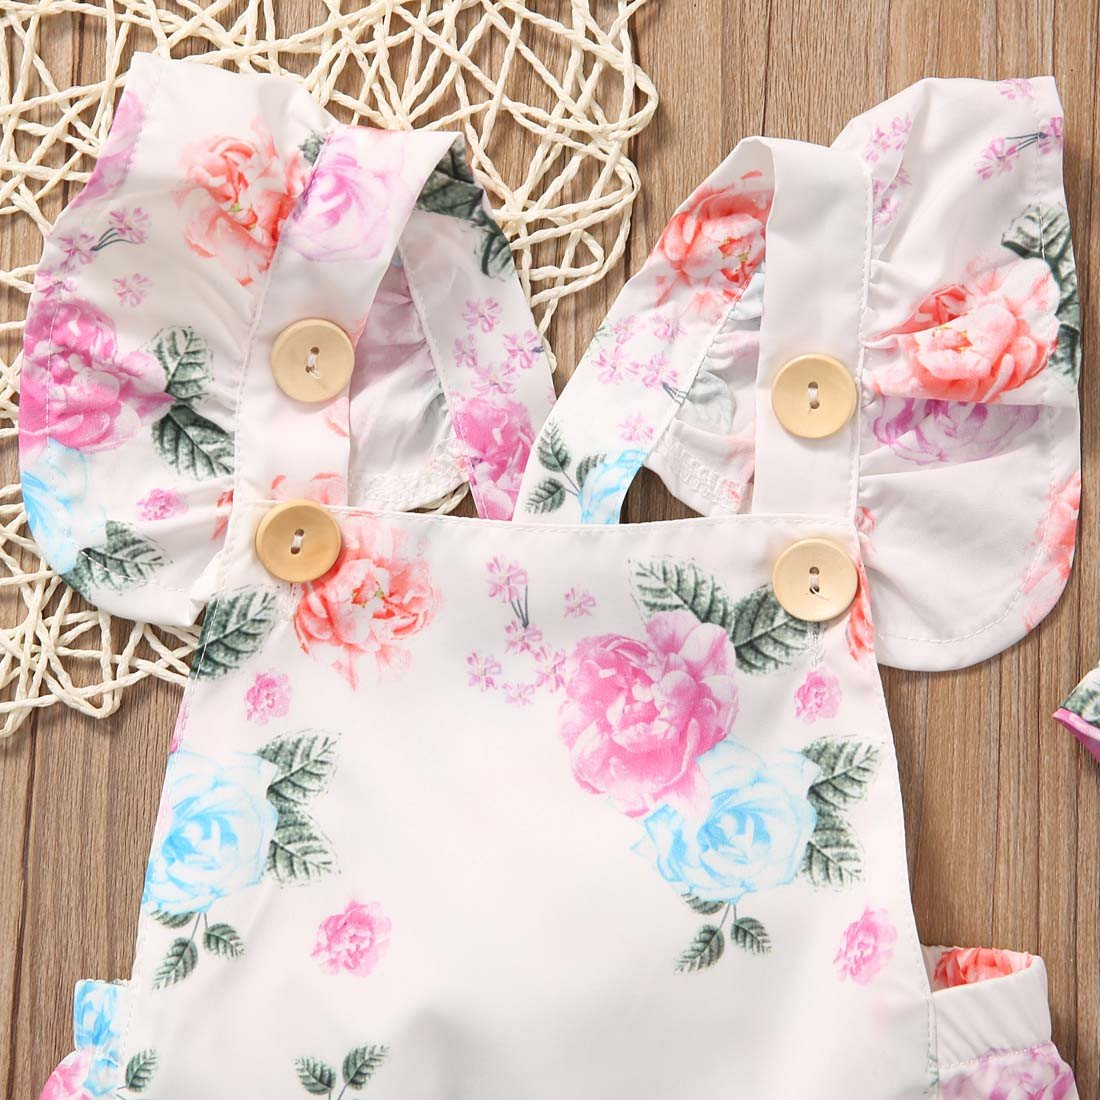 Floral Onesie and Headband - Darling Little One